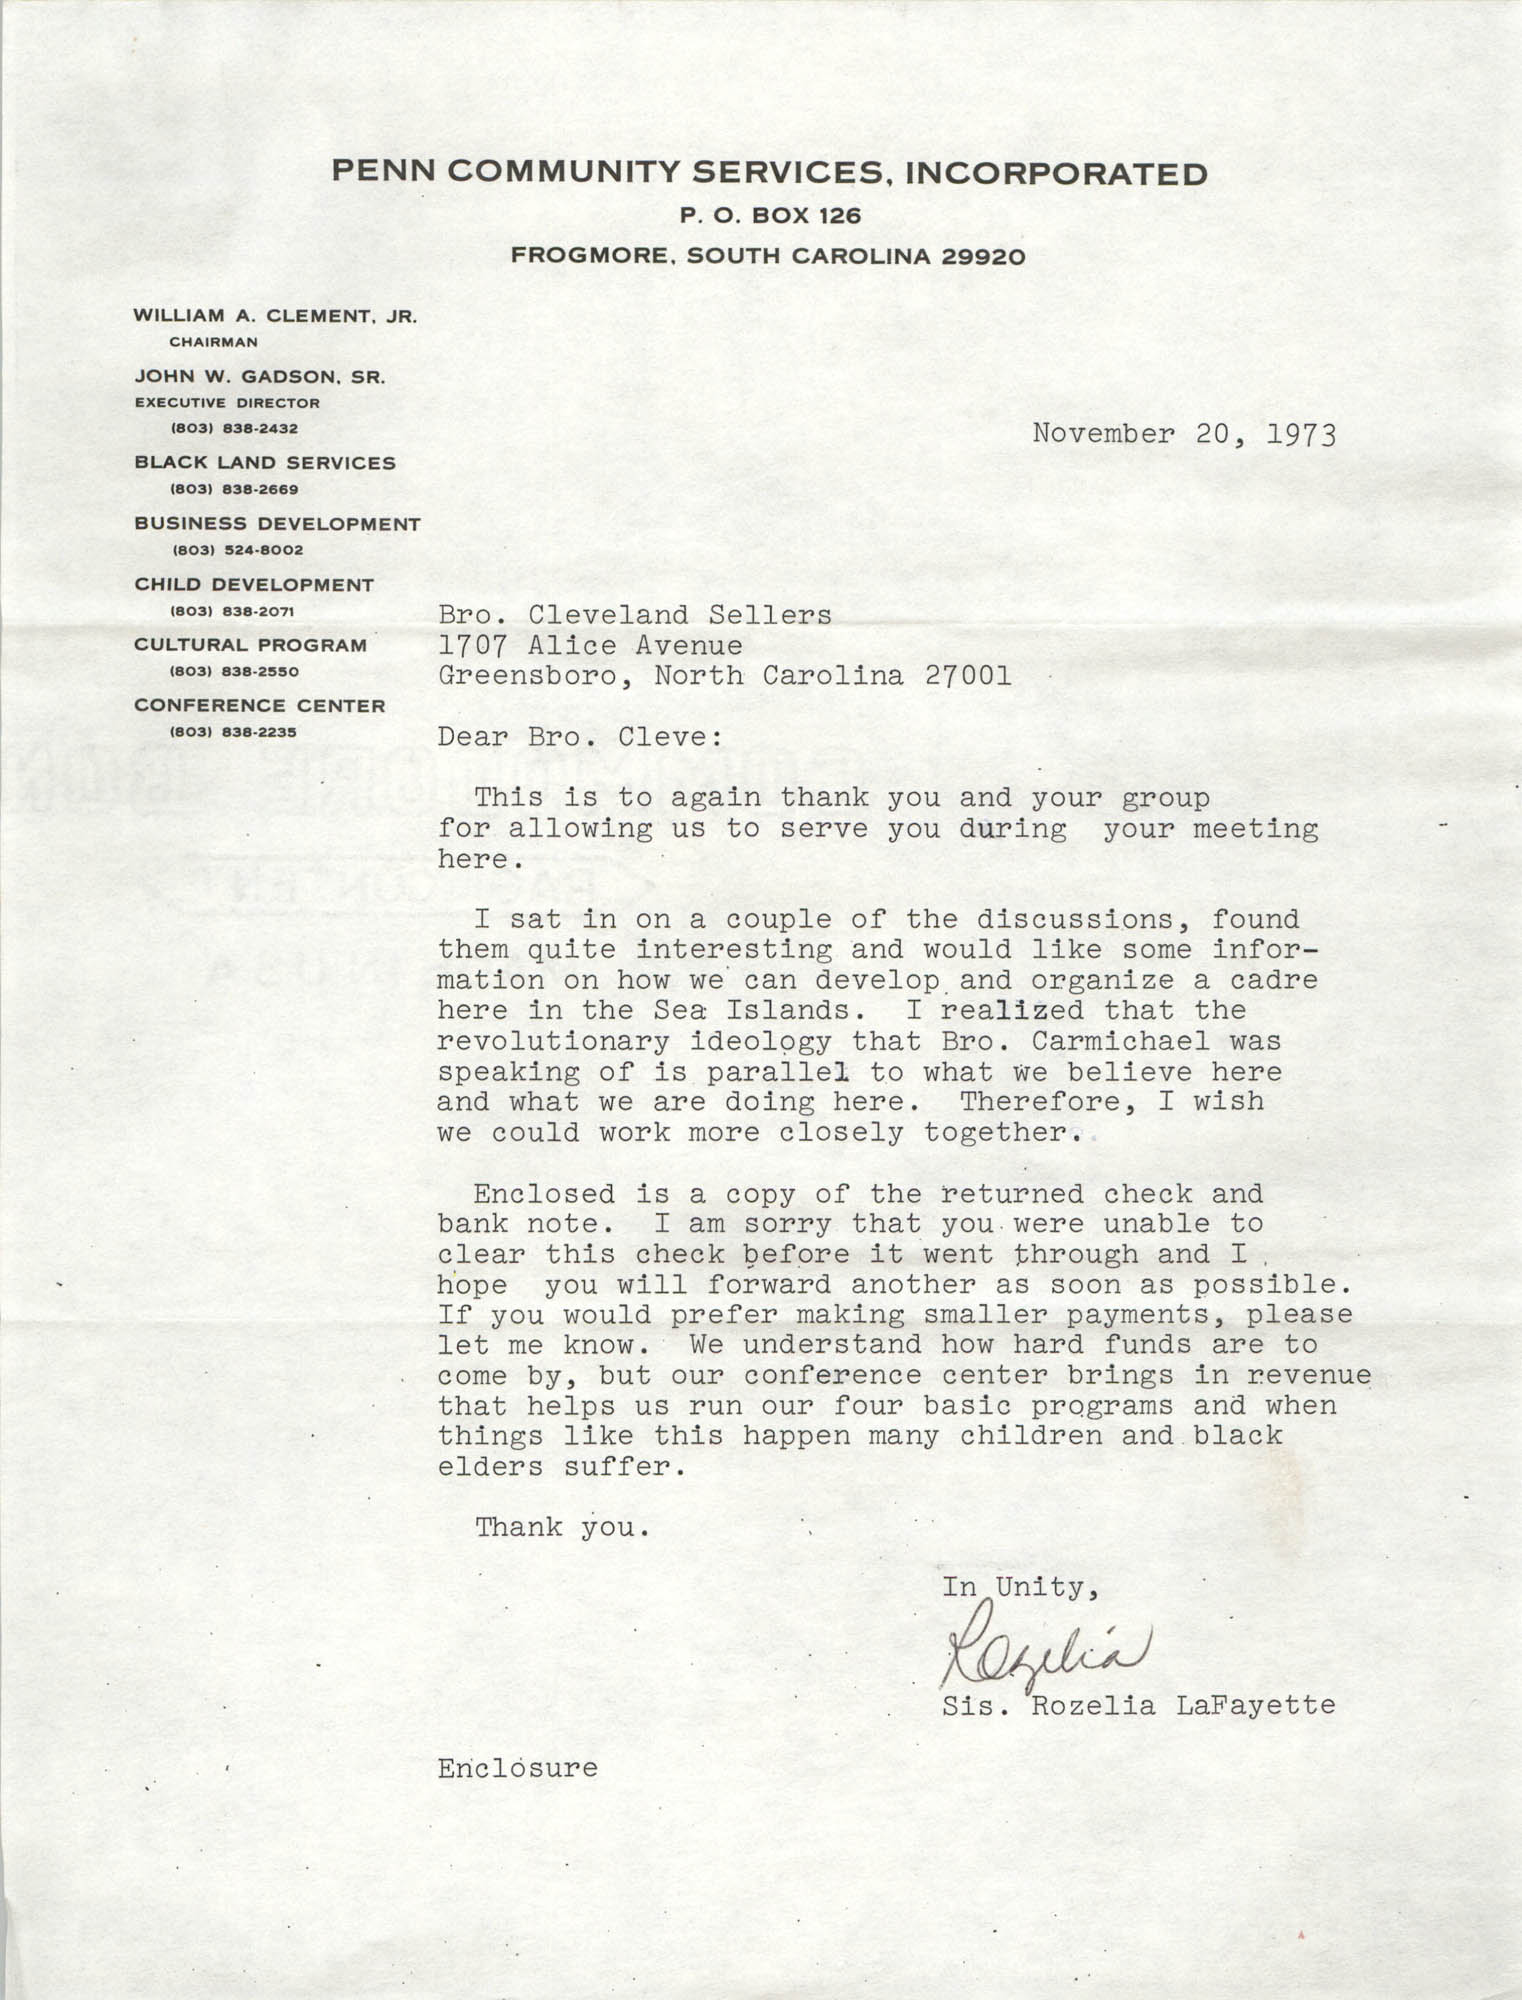 Letter from Rozelia LaFayette to Cleveland Sellers, November 20, 1973